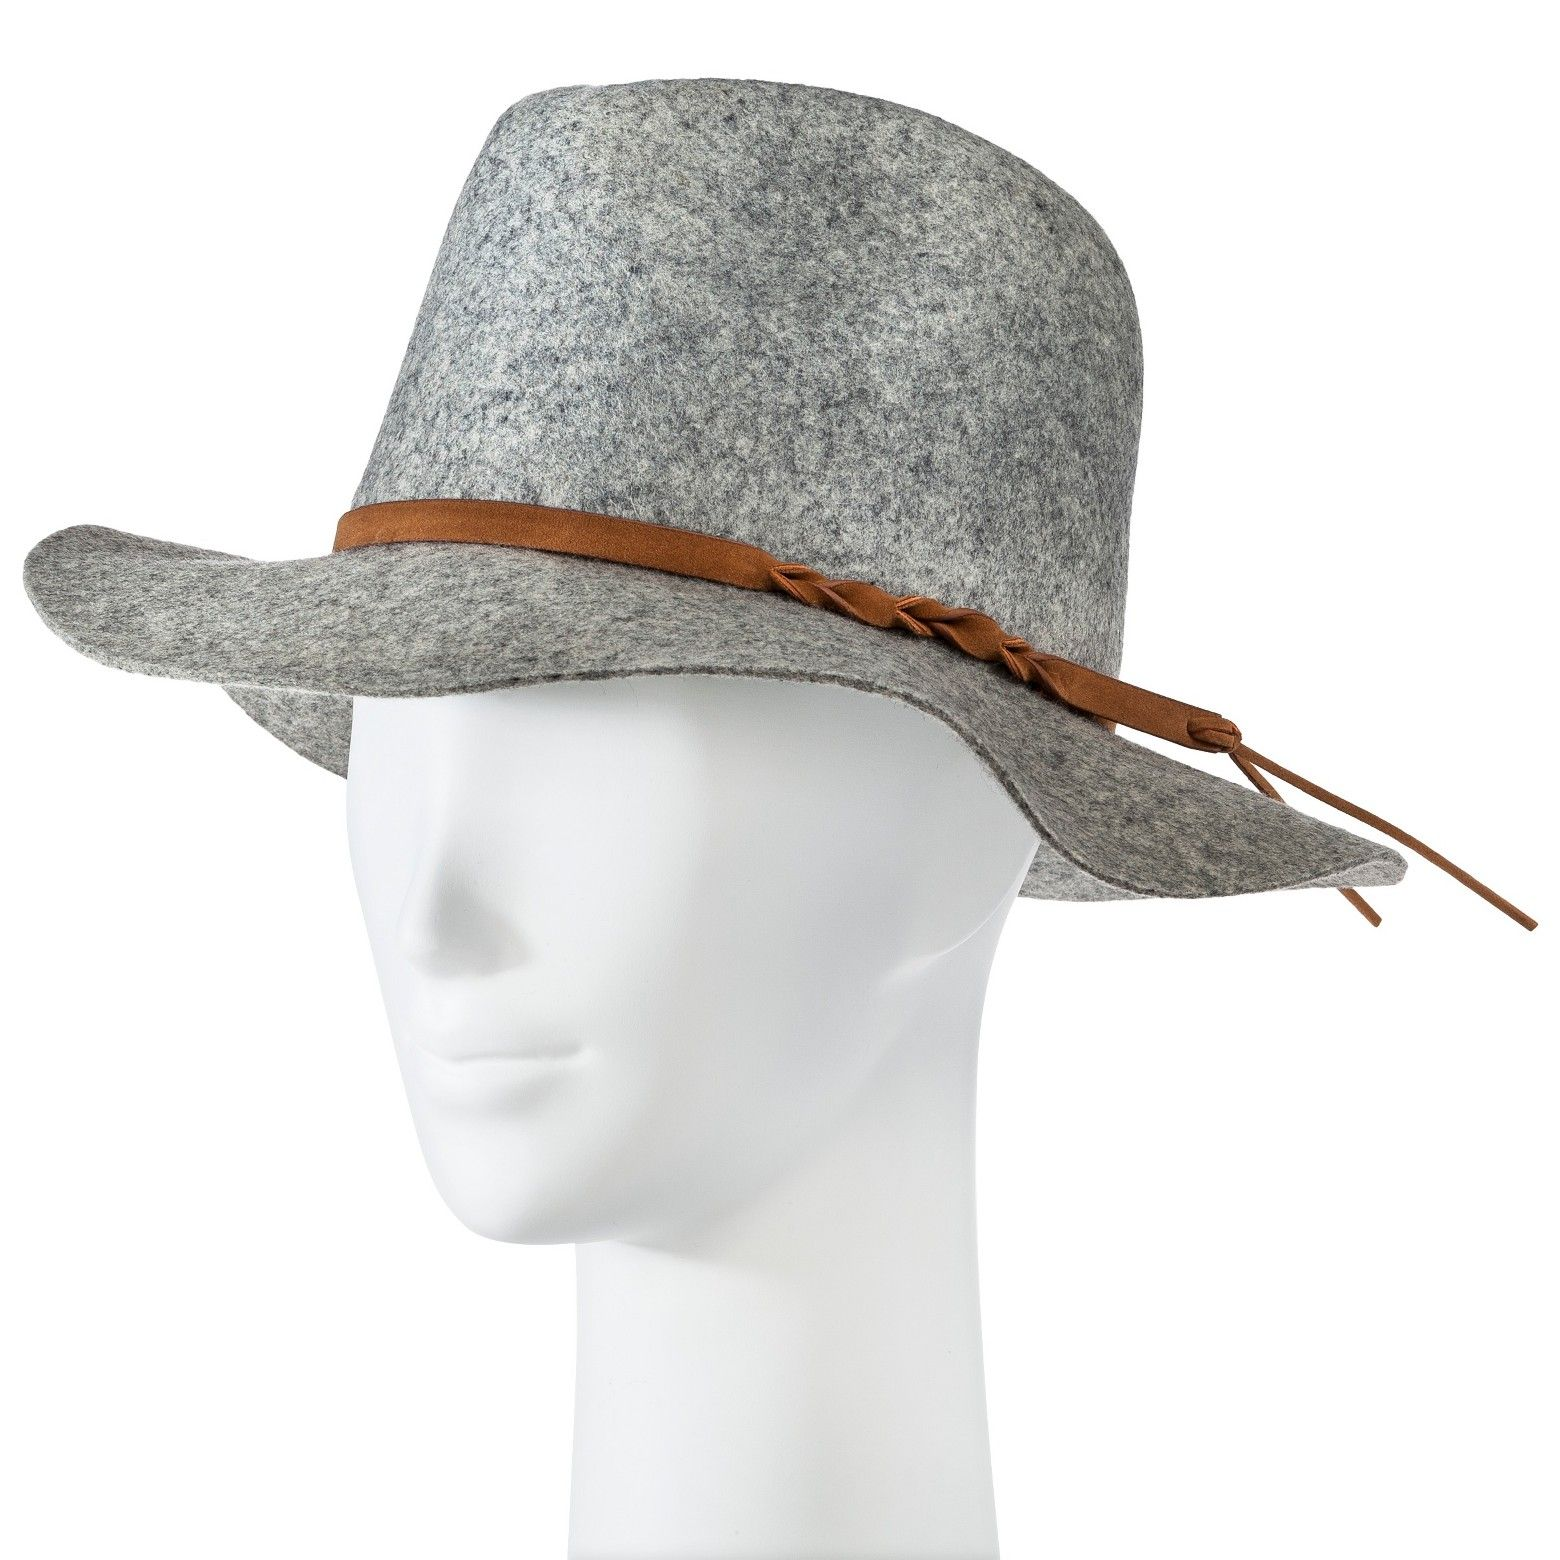 8ce77ef784a2f The classic look of the Women s Fedora Hat from Merona elevates any look.  The beautiful